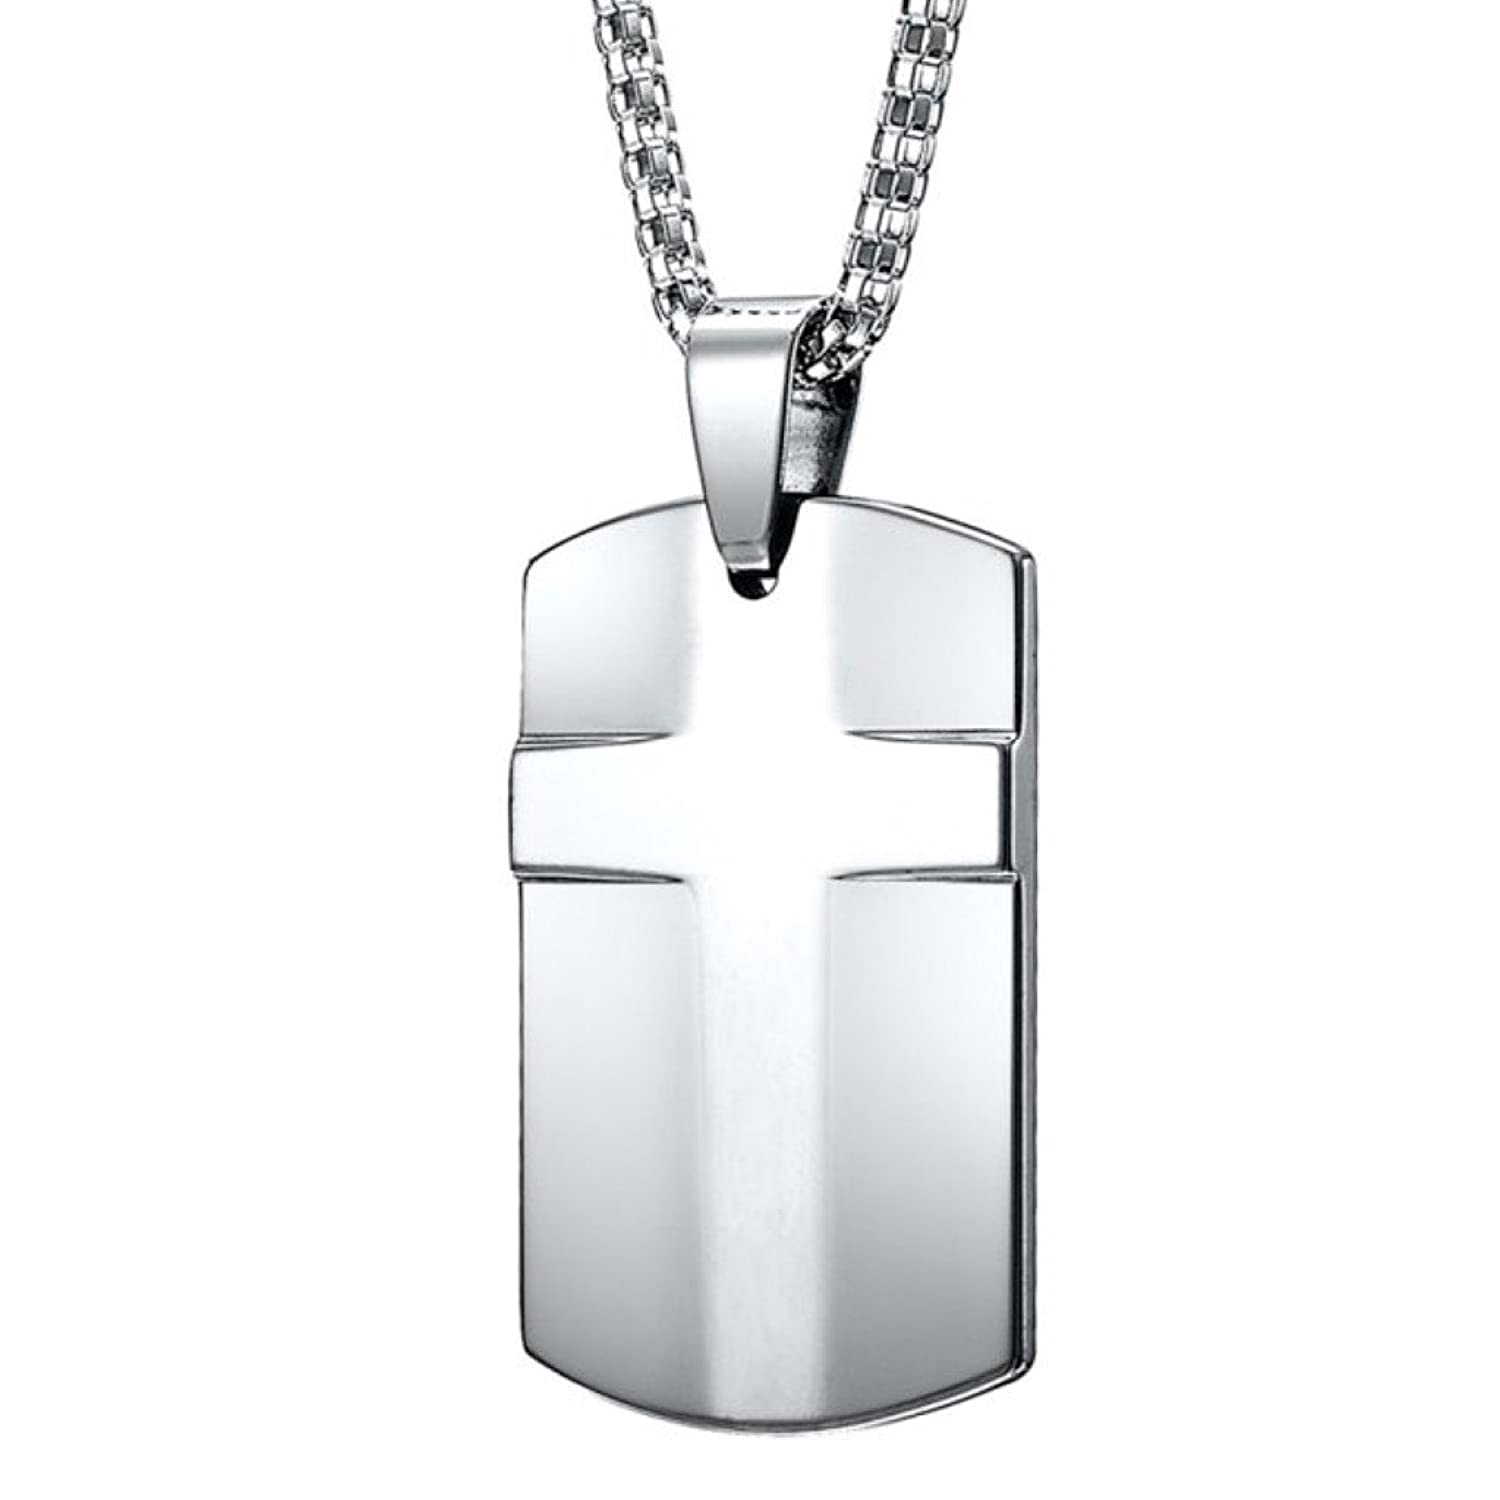 jewelry for tungsten intl perfect and silver men necklace harga with gift product step carbide women high color pendant cool stepby perbandingan both